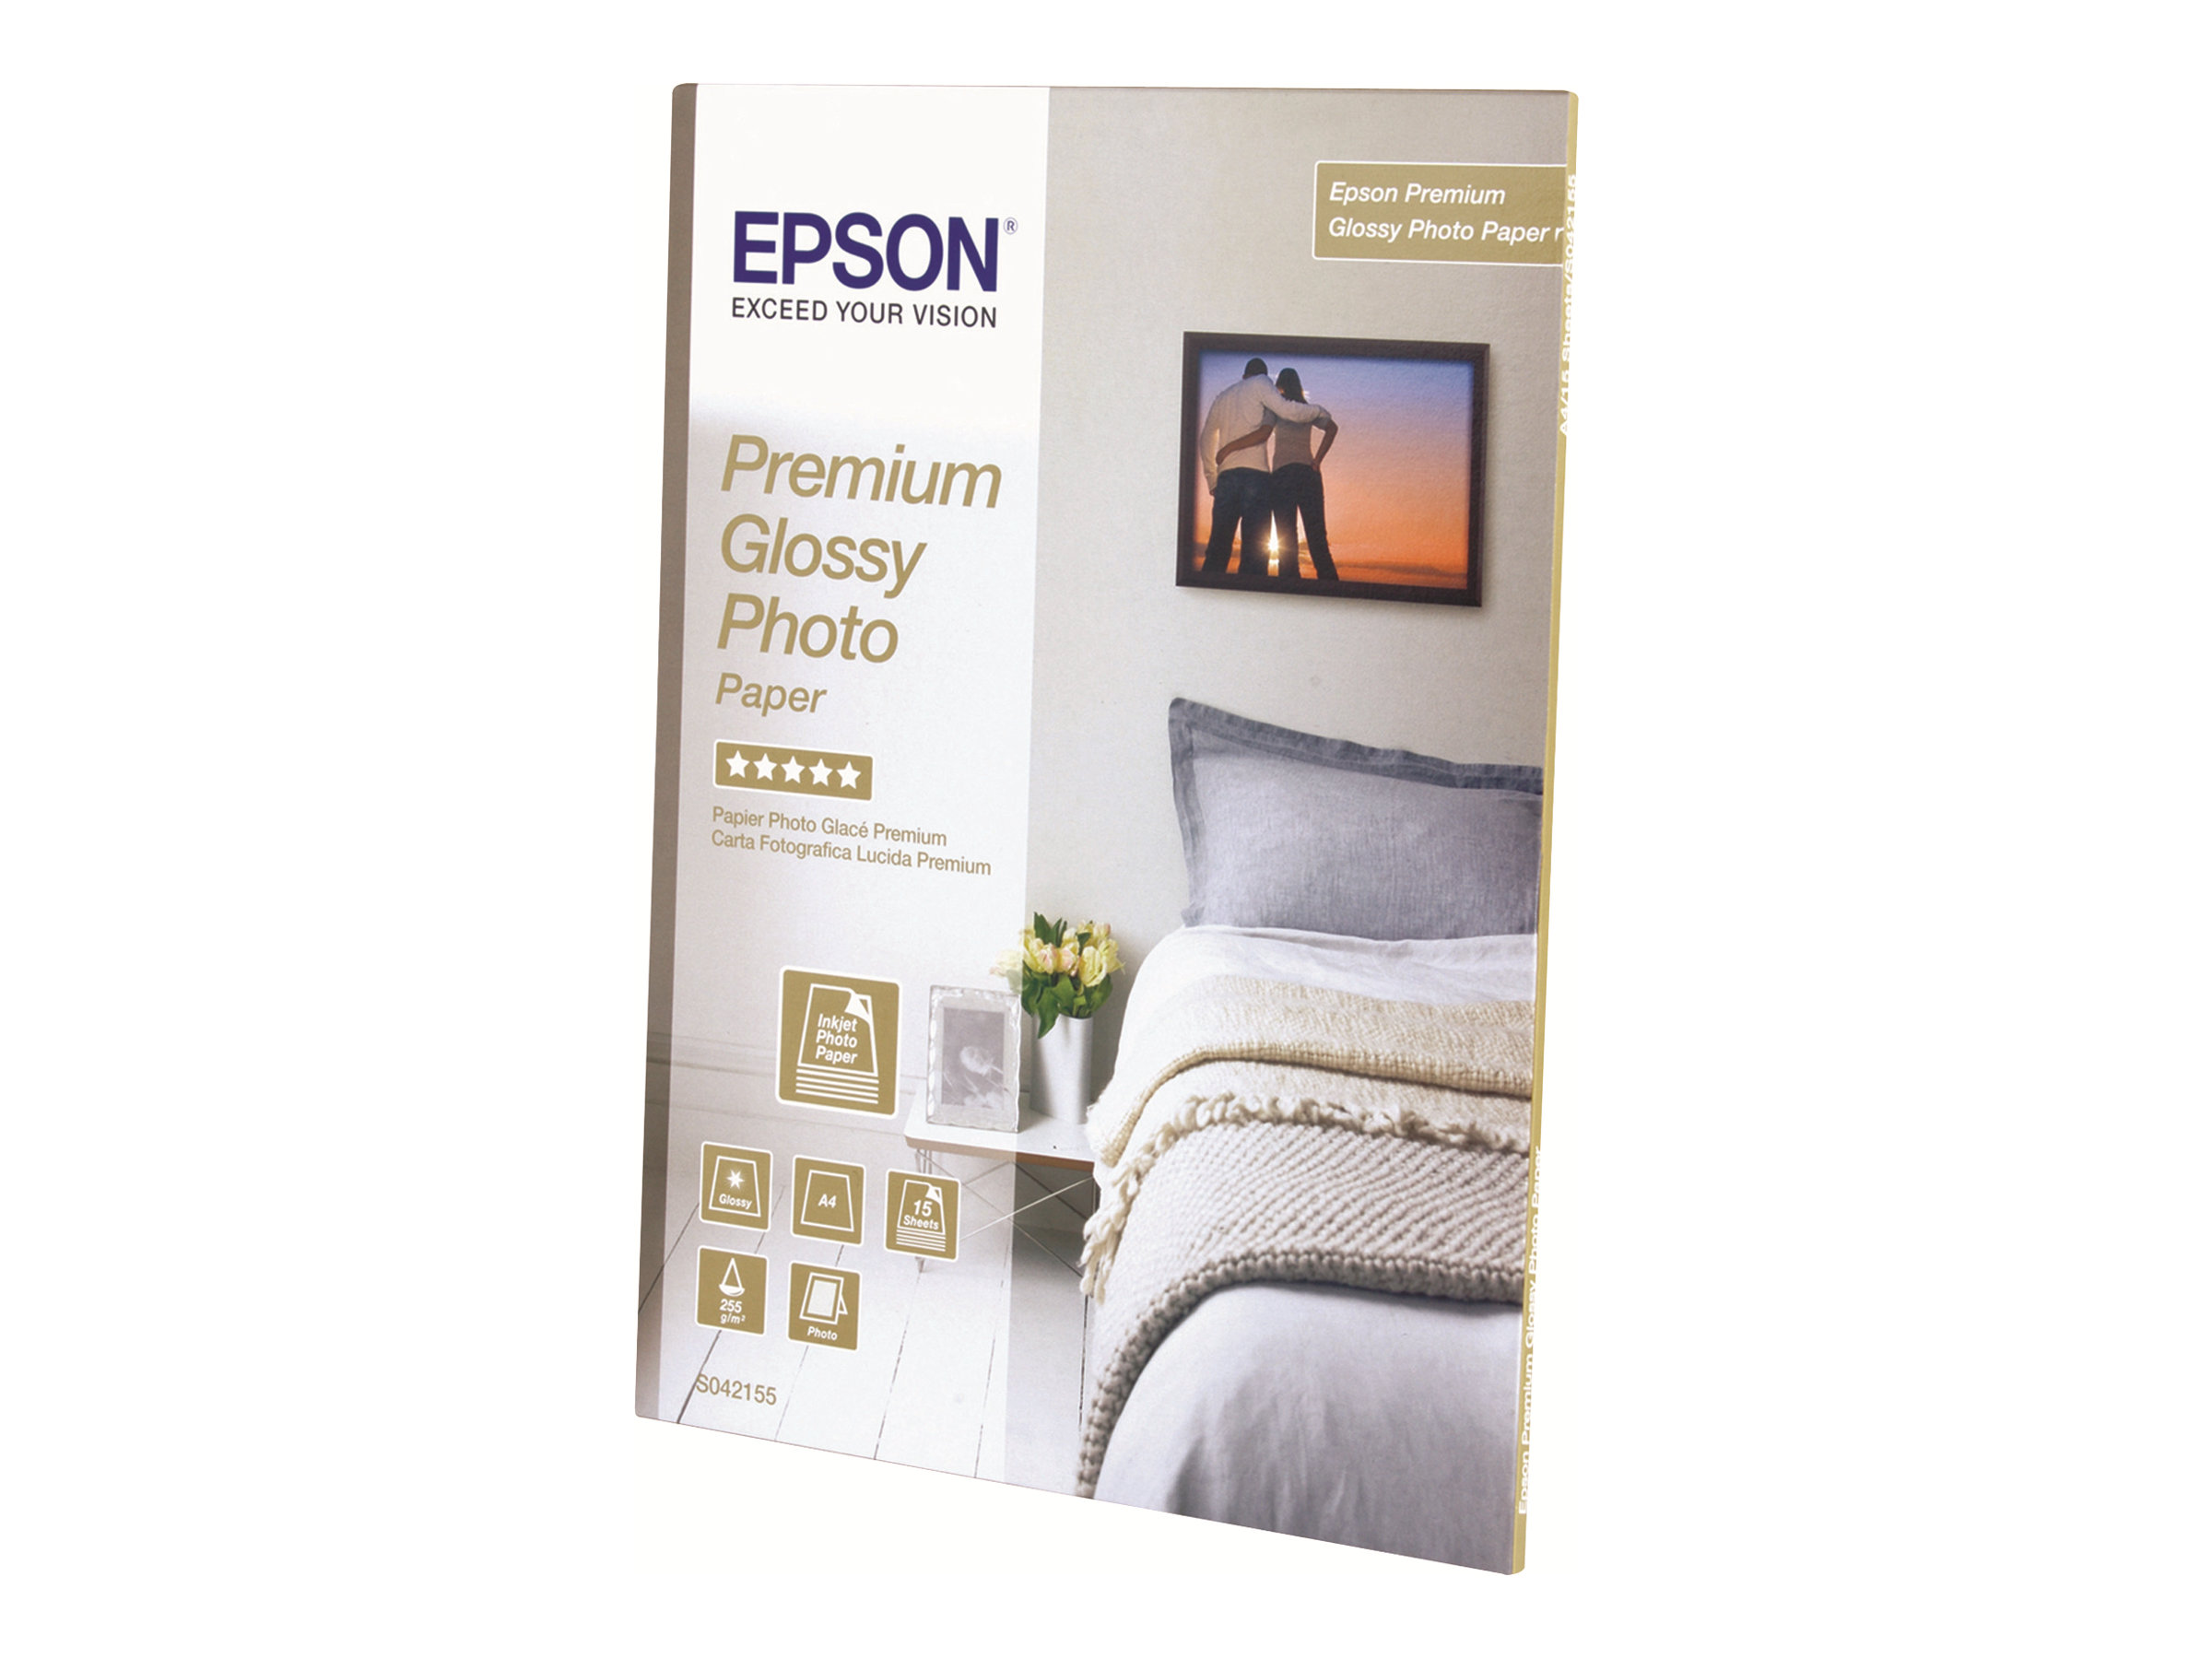 Epson Premium Glossy Photo Paper - papier photo - 15 feuille(s)